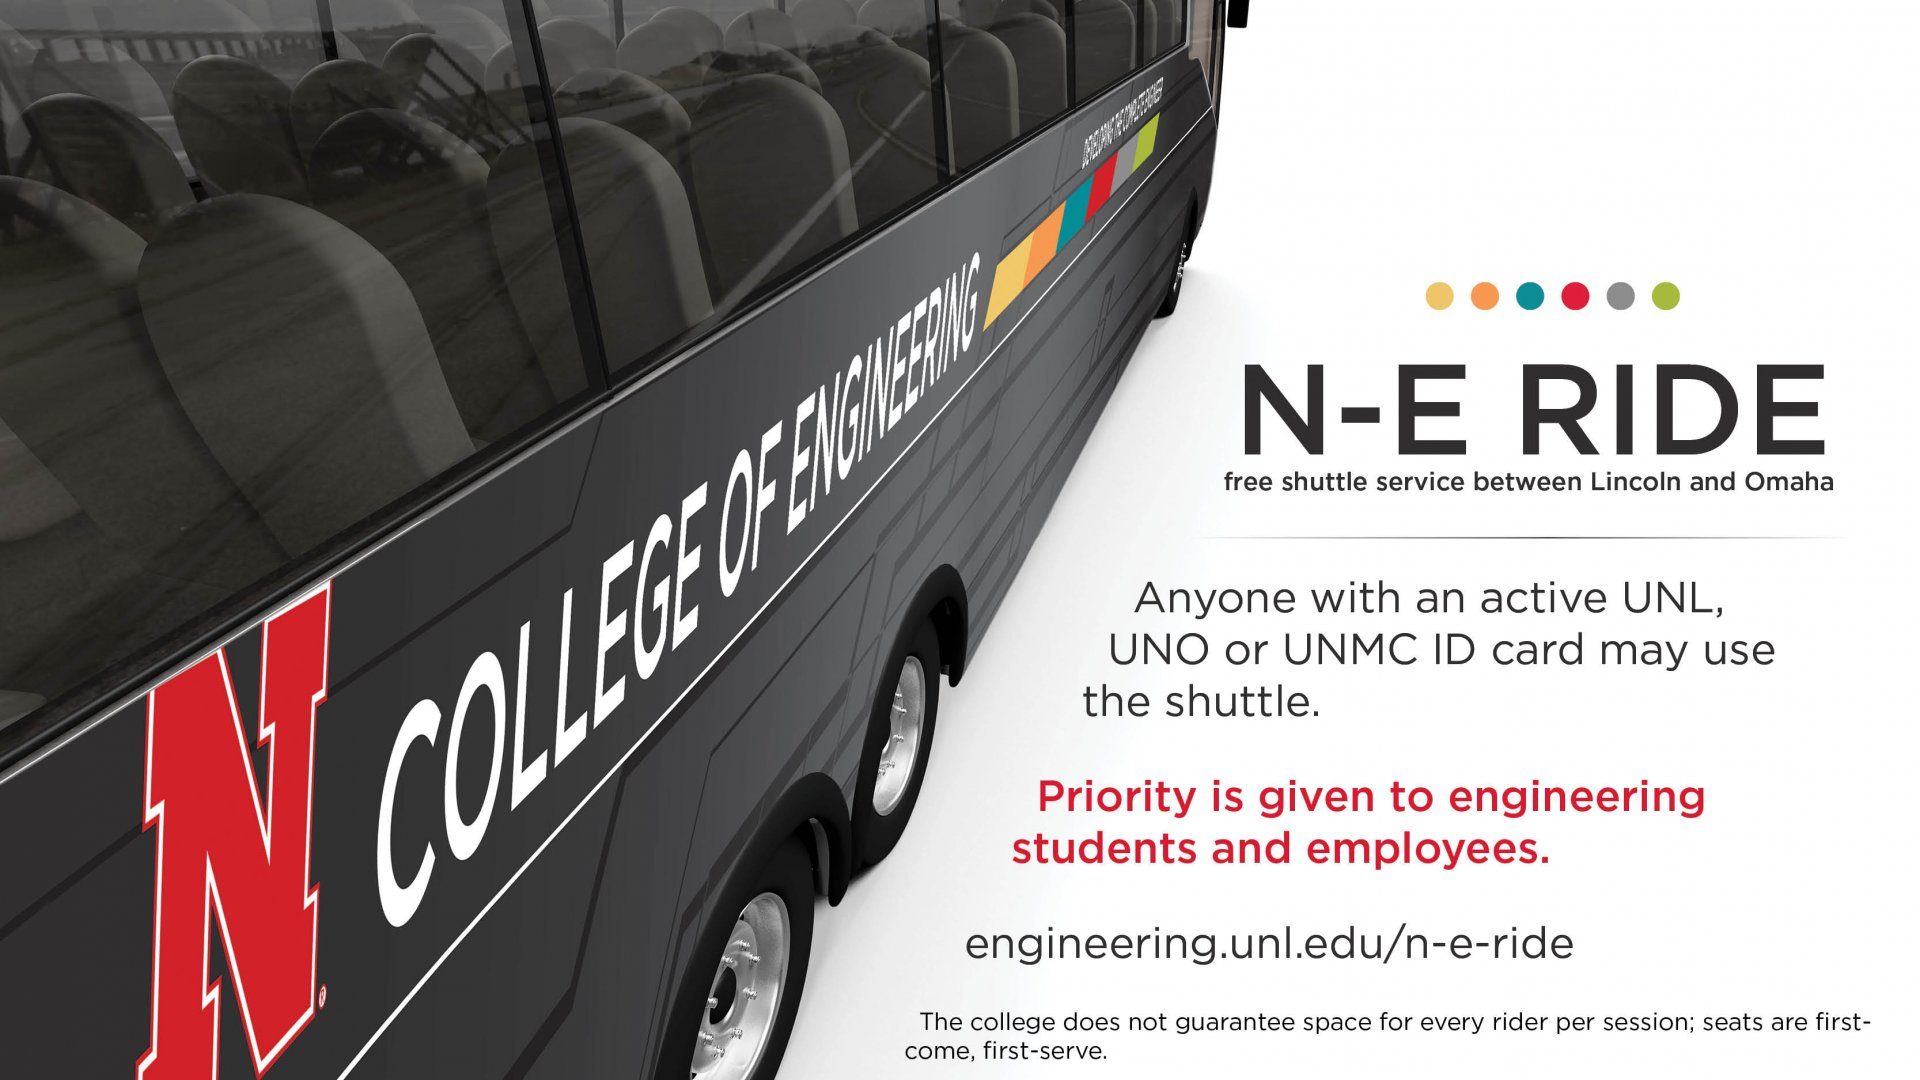 N-E RIDE: free shuttle between Lincoln and Omaha. Anyone with an active UNL, UNO or UNMC ID card may use the shuttle.